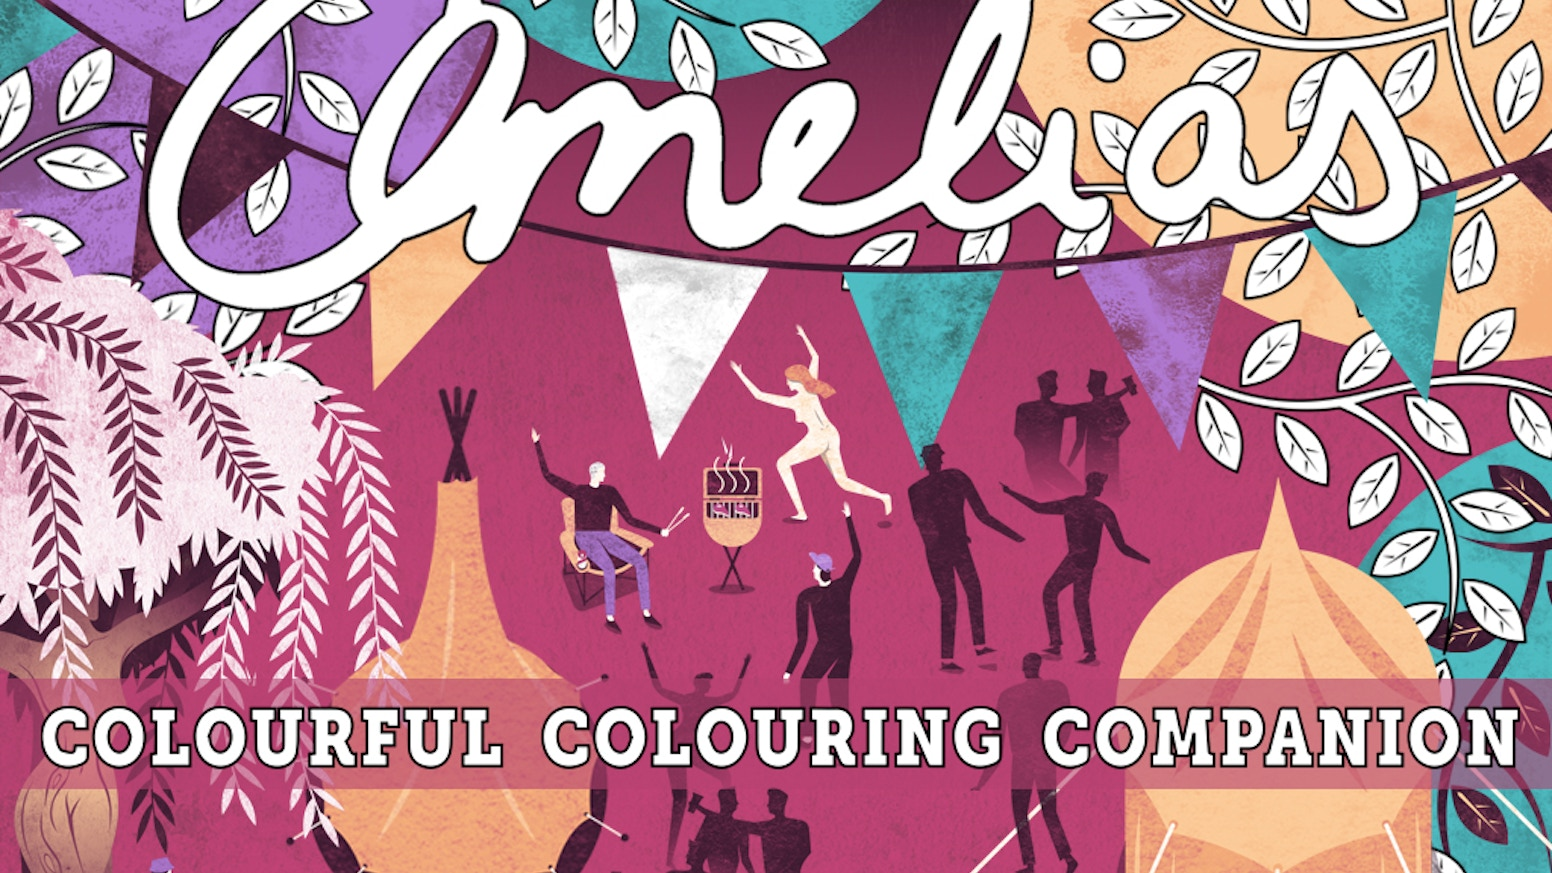 Amelia's Colourful Colouring Companion: a unique collaborative colouring book for adults featuring 40 artists. A perfect Christmas gift